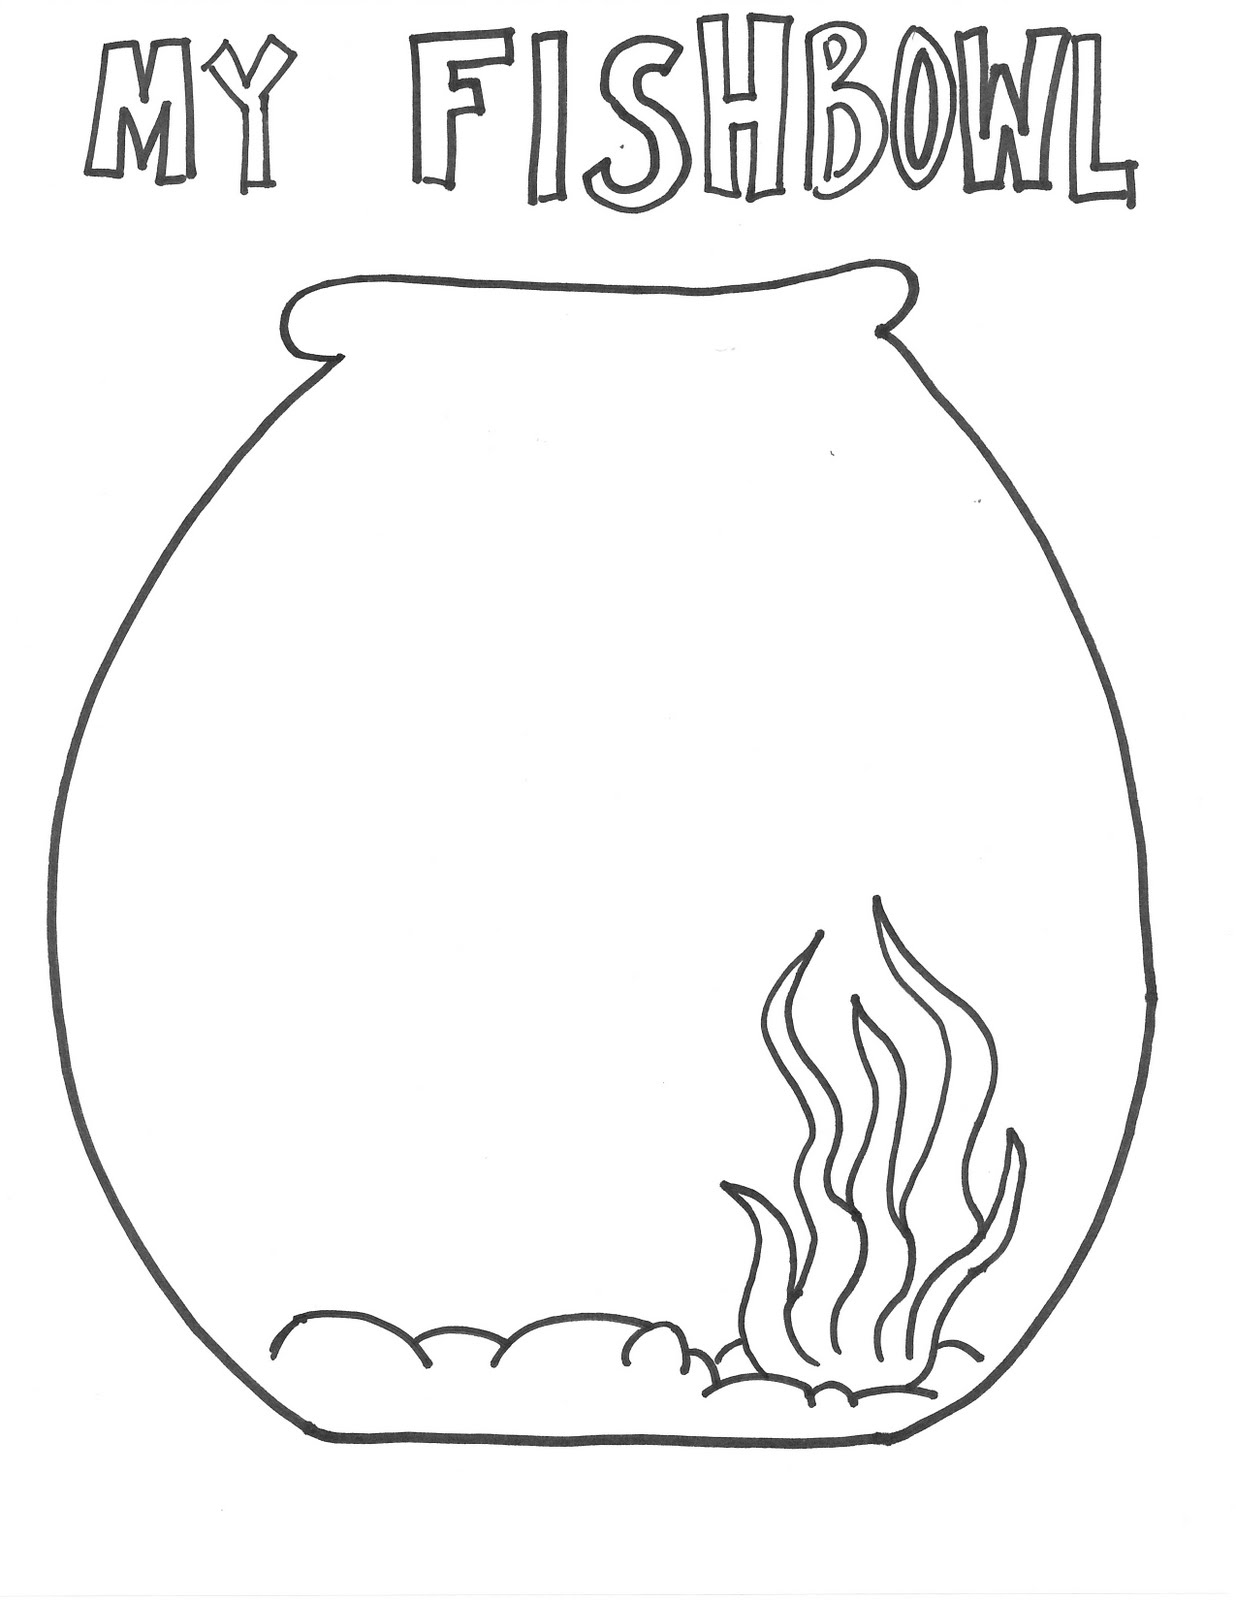 Fish Bowl Coloring Page N7 Free Image